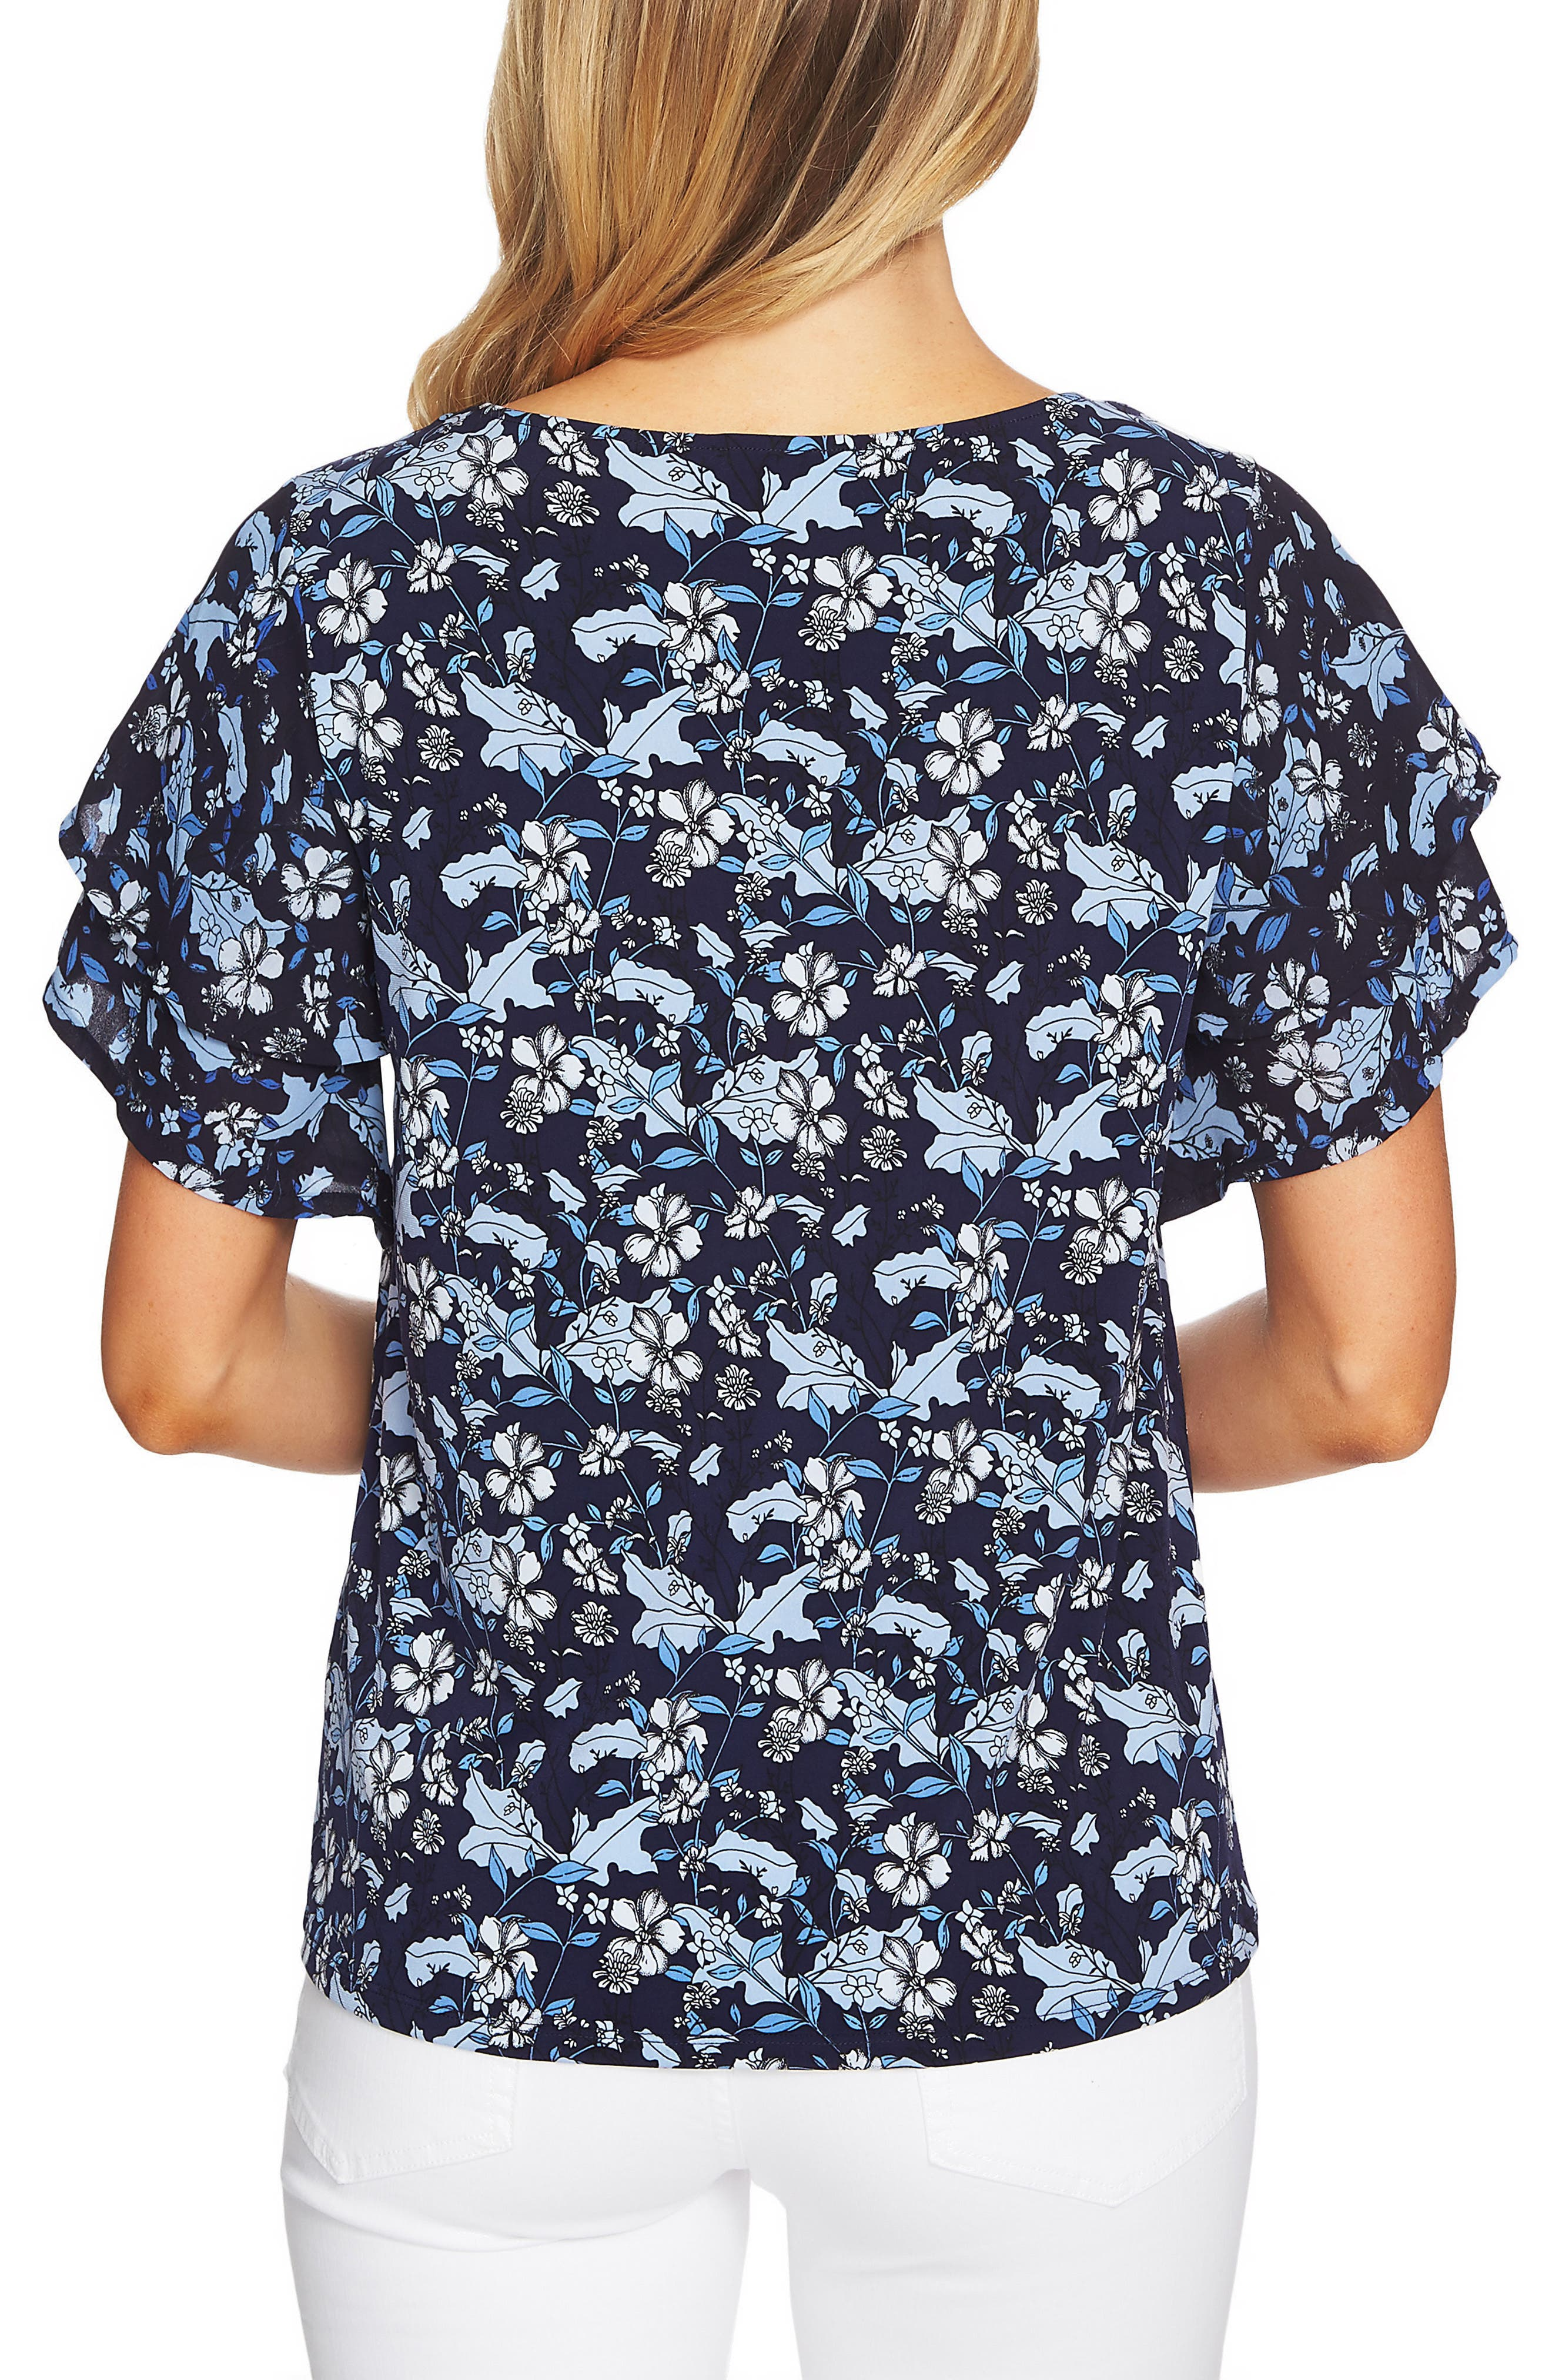 CECE,                             Tiered Sleeve Floral Top,                             Alternate thumbnail 2, color,                             430